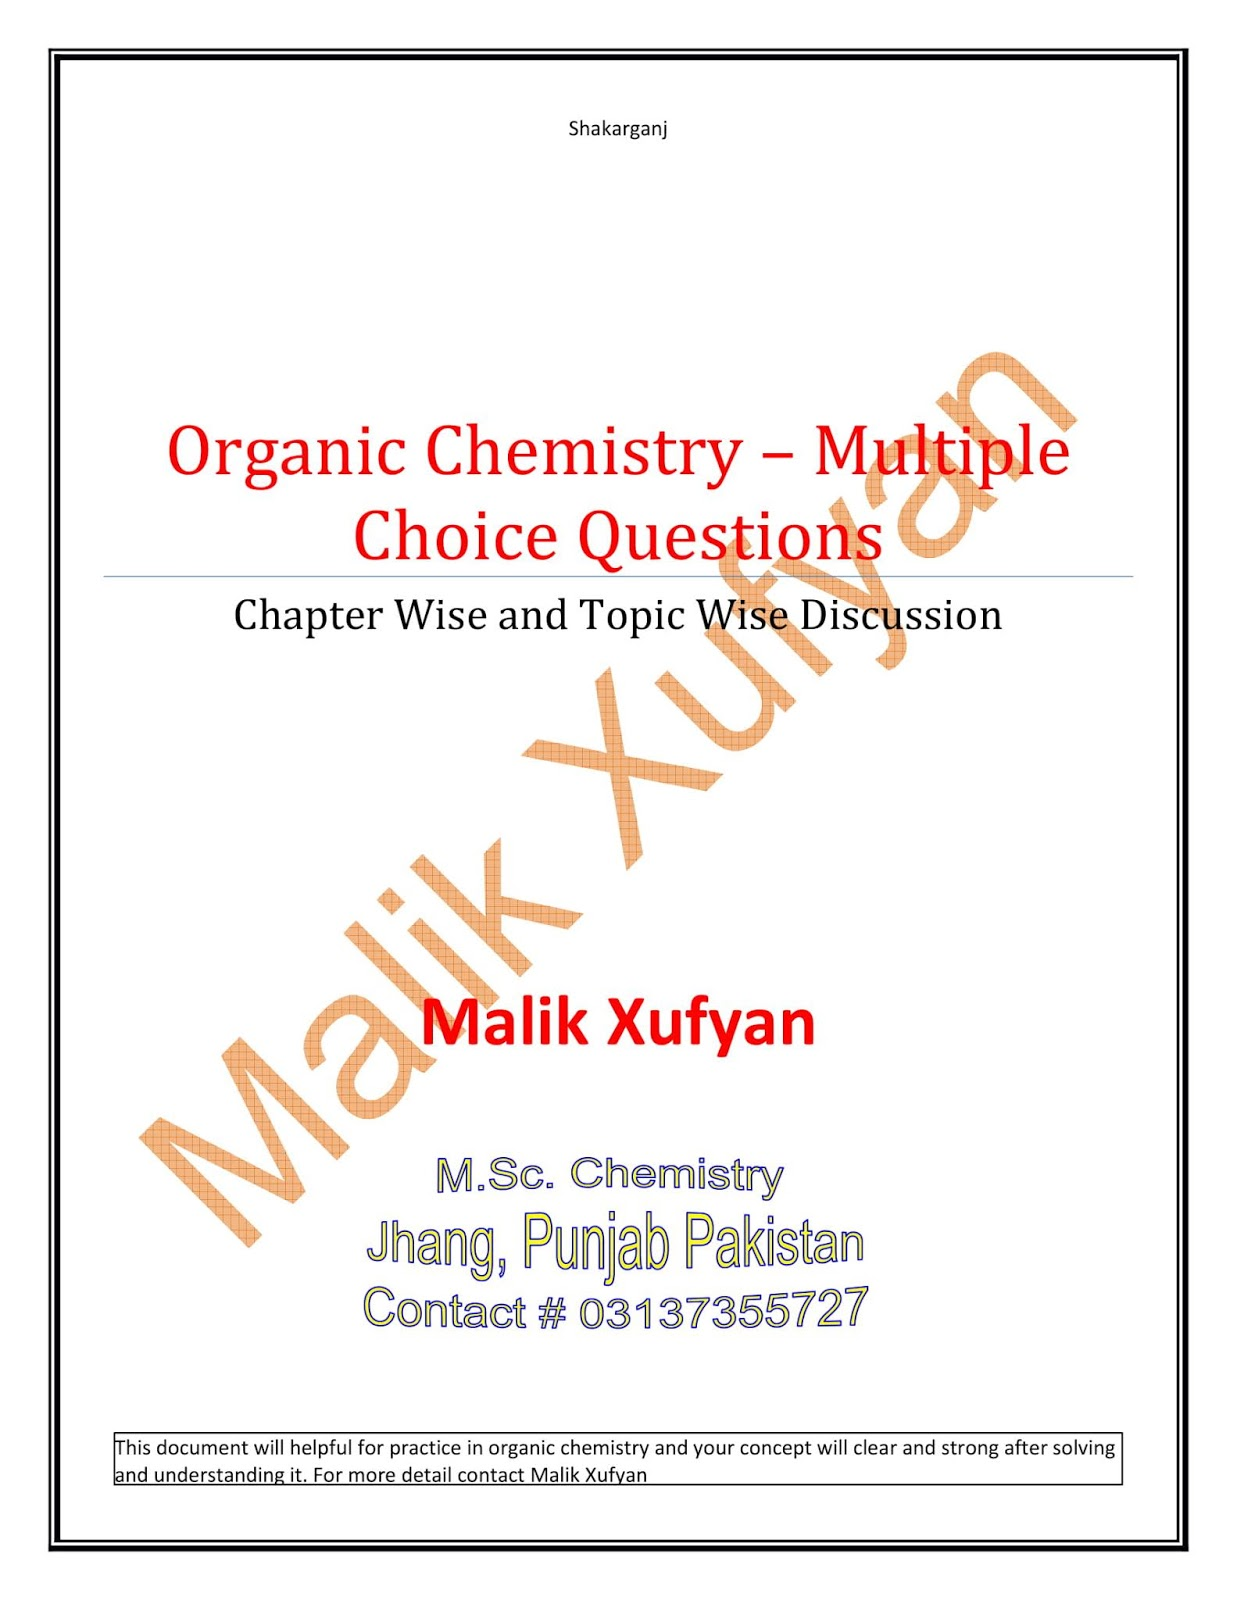 Malik Xufyan- Only Chemistry Discussion: Organic Chemistry